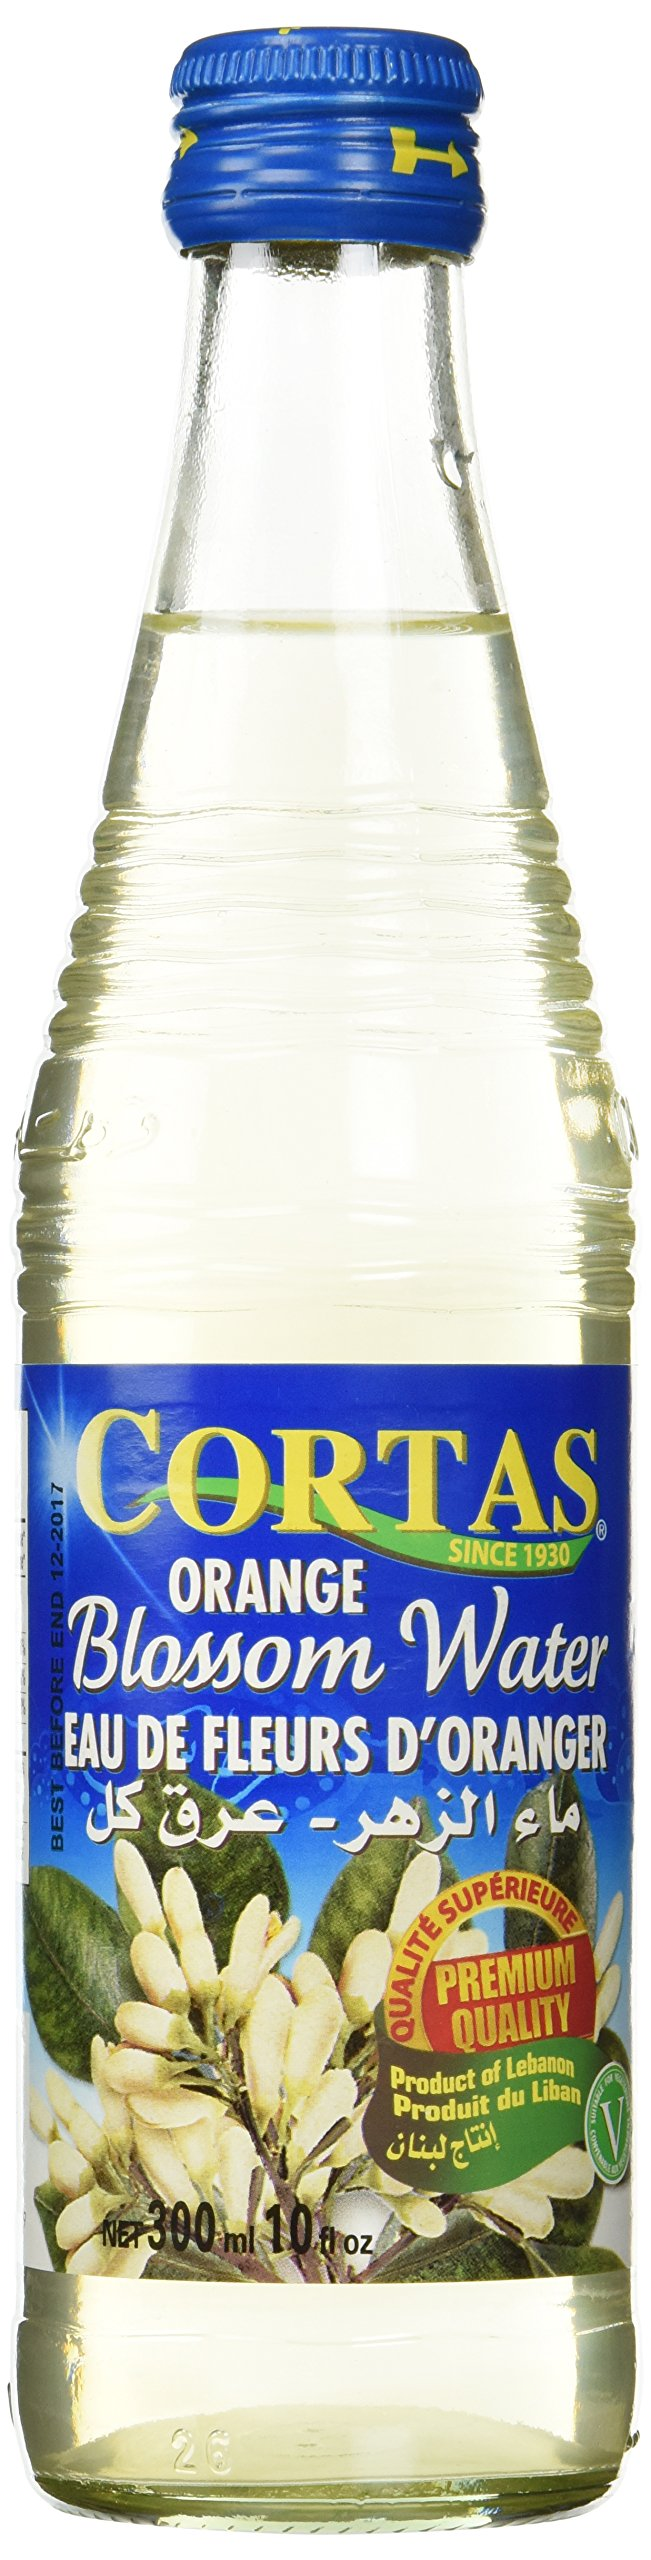 Orange Blossom Water (Cortas) 10fl oz